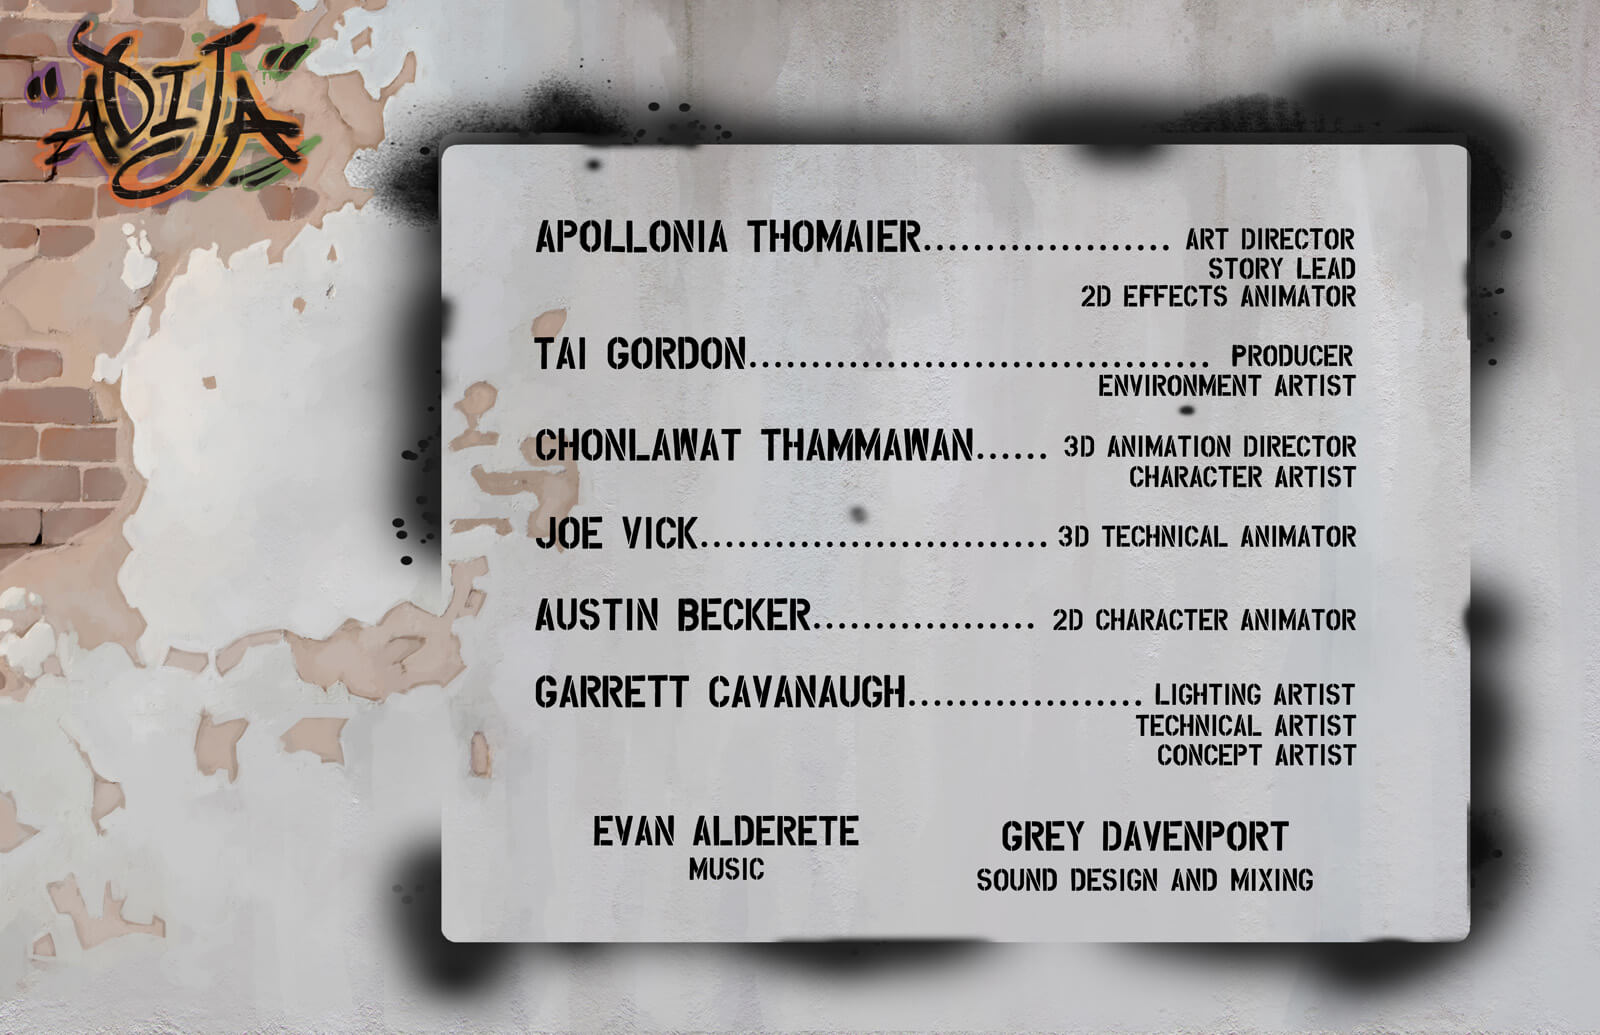 Credits for the film Adija in a stylized format of a spray painted background